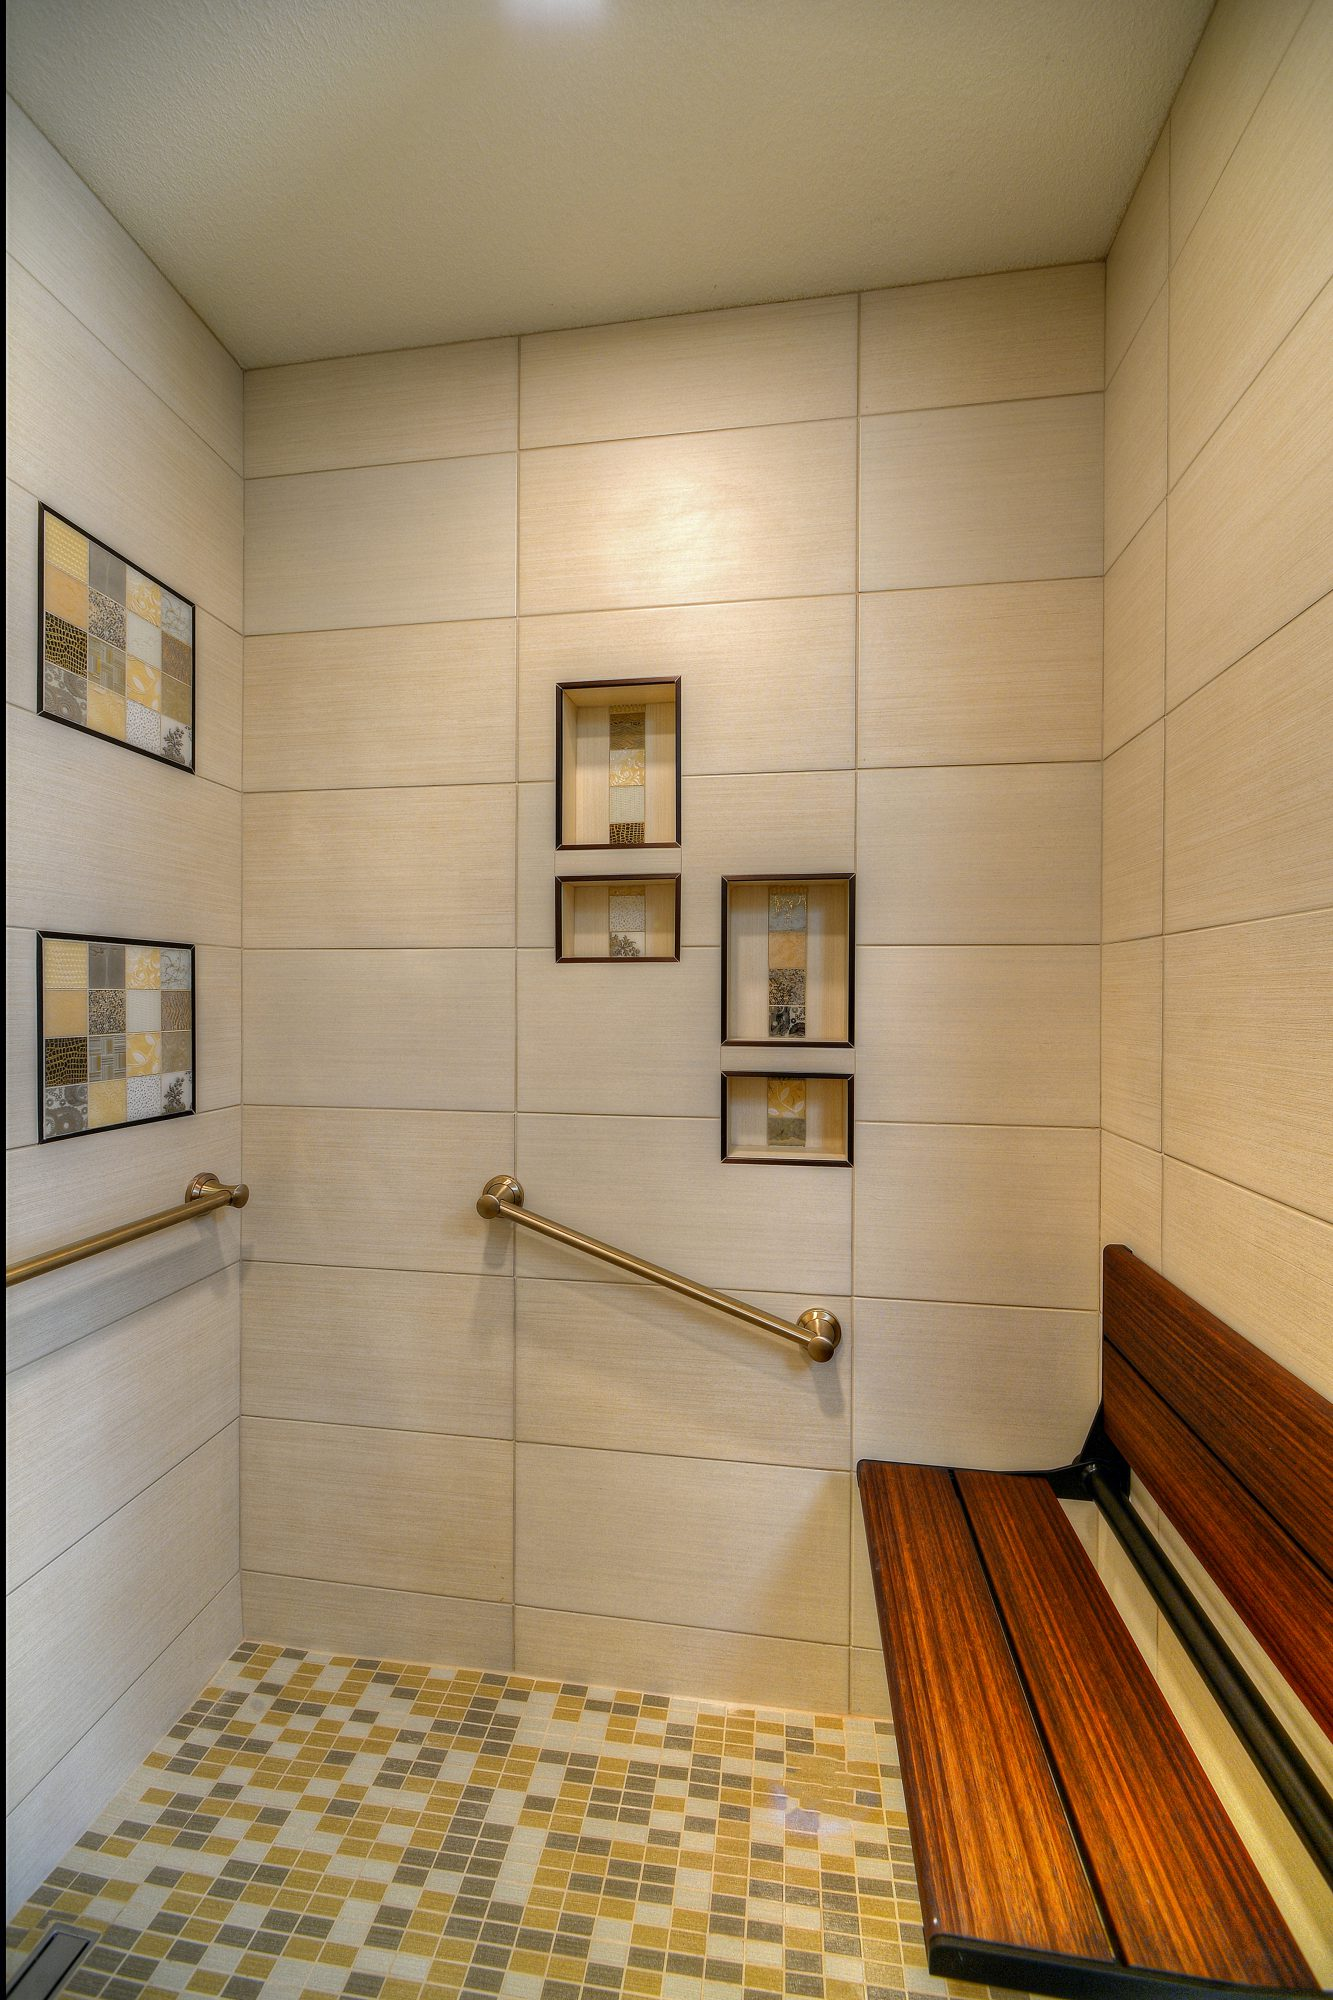 Scottsdale aging in place remodel dementia supportive for Ada compliant hallway